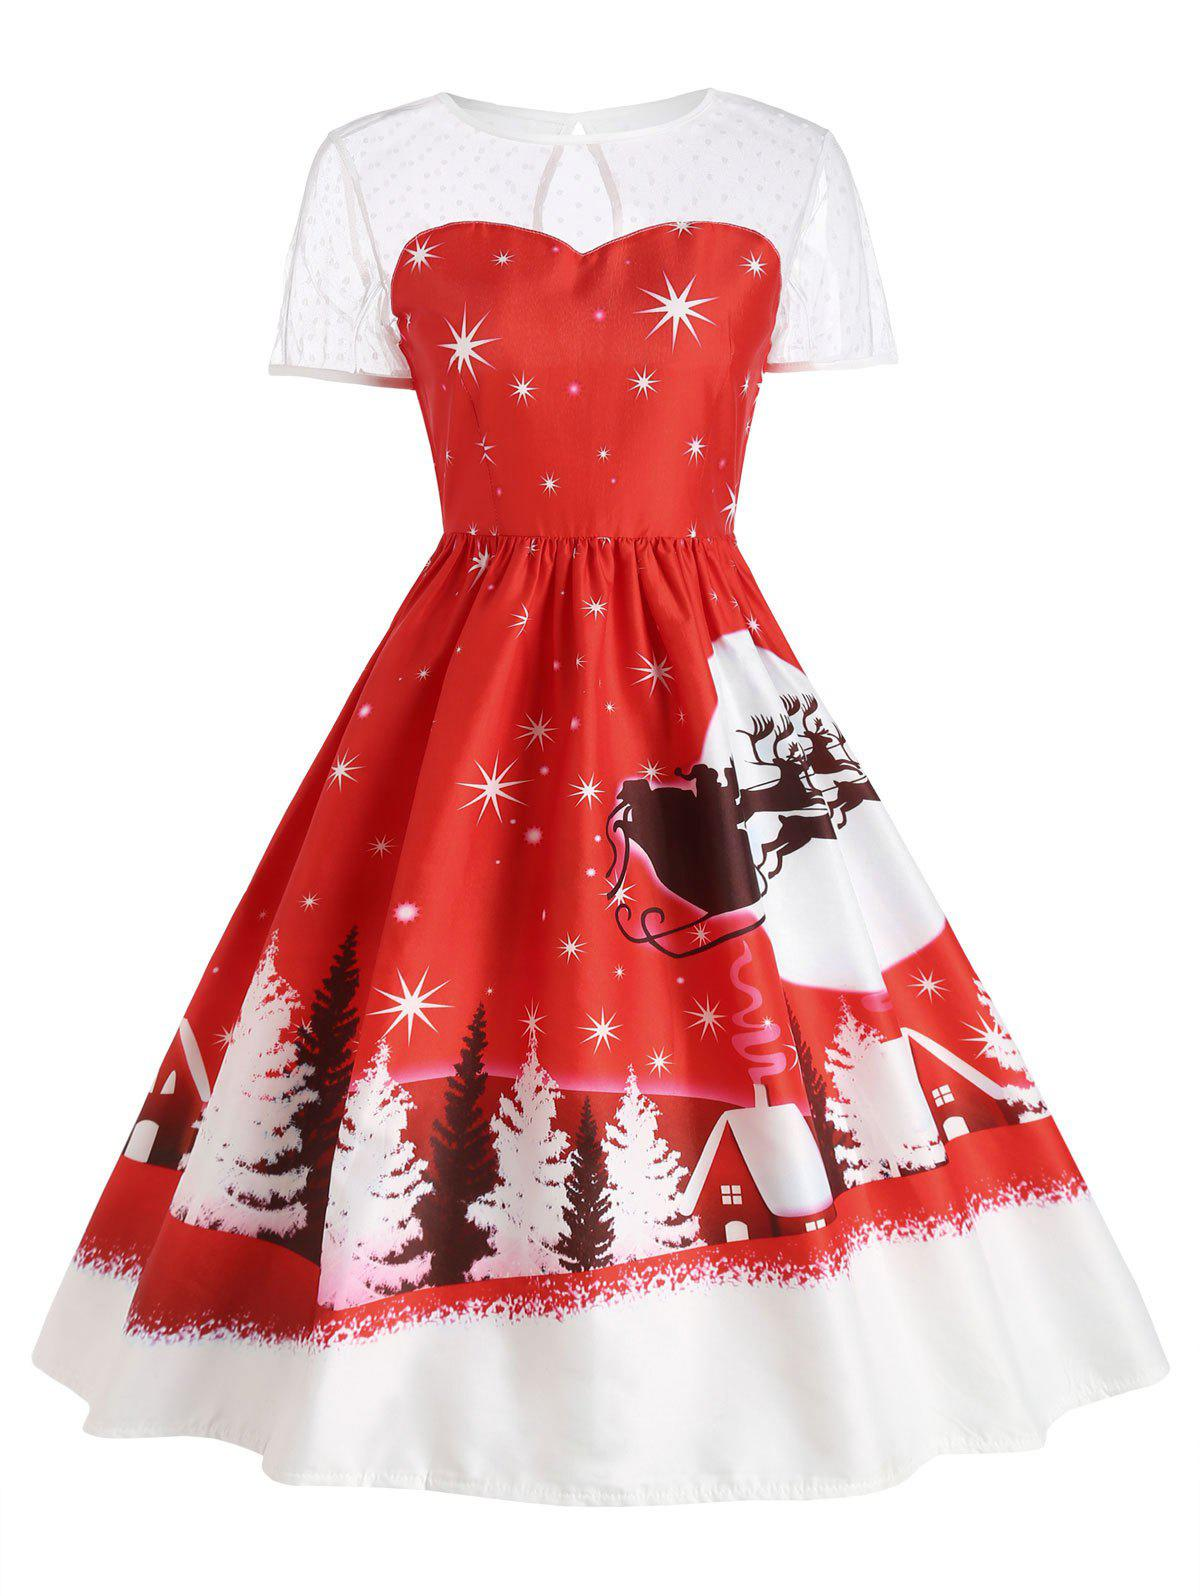 Santa Claus Deer Vintage Christmas DressWOMEN<br><br>Size: L; Color: RED; Style: Cute; Material: Polyester; Silhouette: Ball Gown; Dresses Length: Mid-Calf; Neckline: Round Collar; Sleeve Length: Short Sleeves; Pattern Type: Print; With Belt: No; Season: Fall,Winter; Weight: 0.2400kg; Package Contents: 1 x Dress;